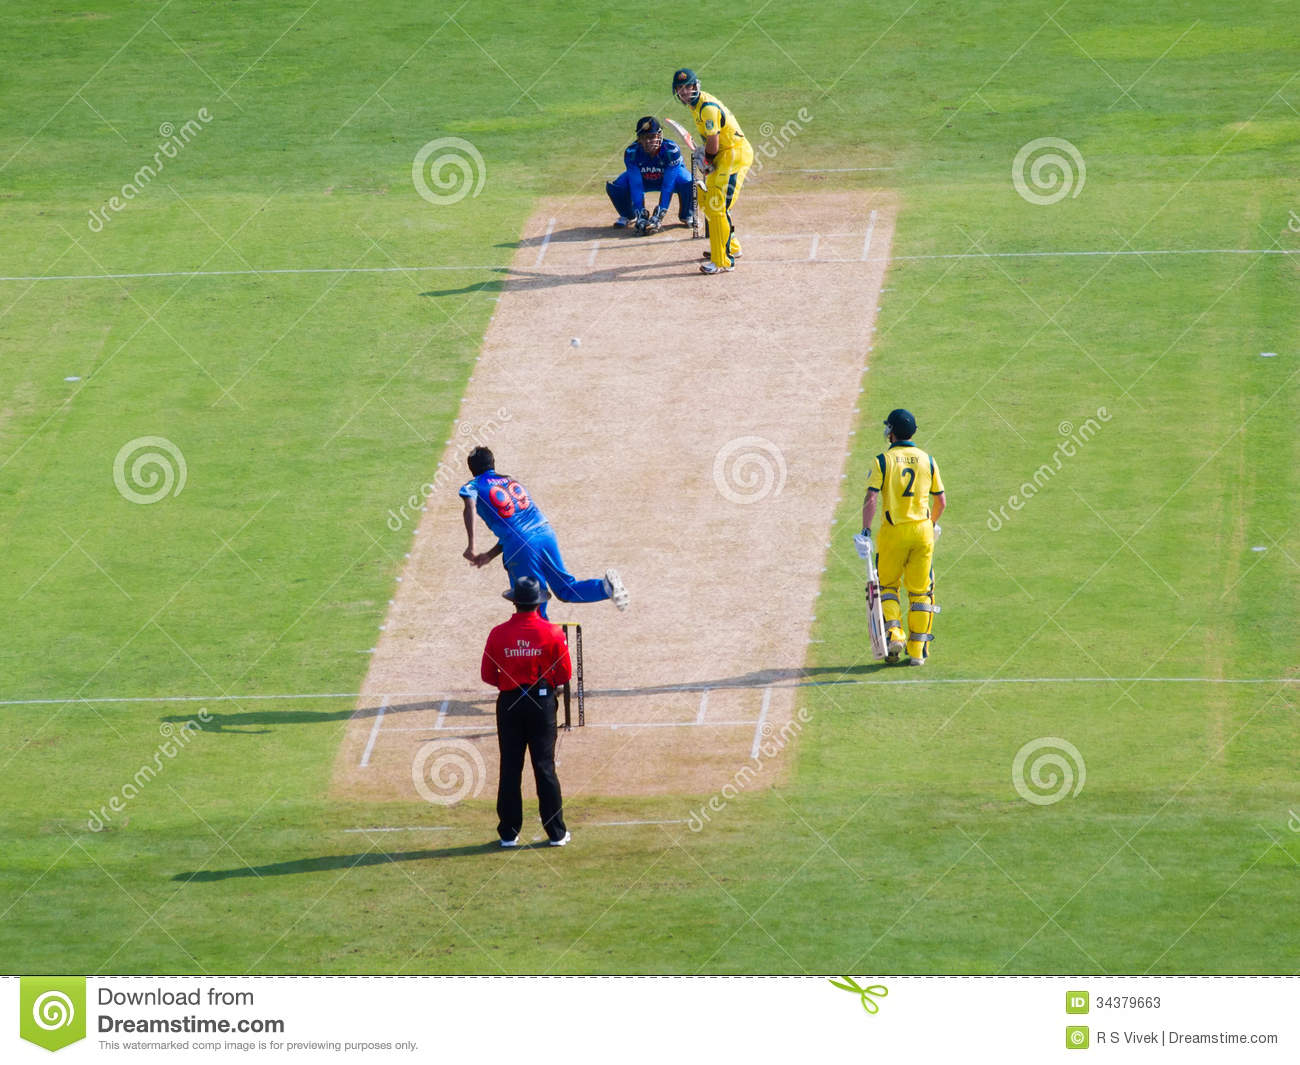 i saw one cricket match Official icc cricket website - live matches, scores, news, highlights, commentary, rankings, videos and fixtures from the international cricket council.